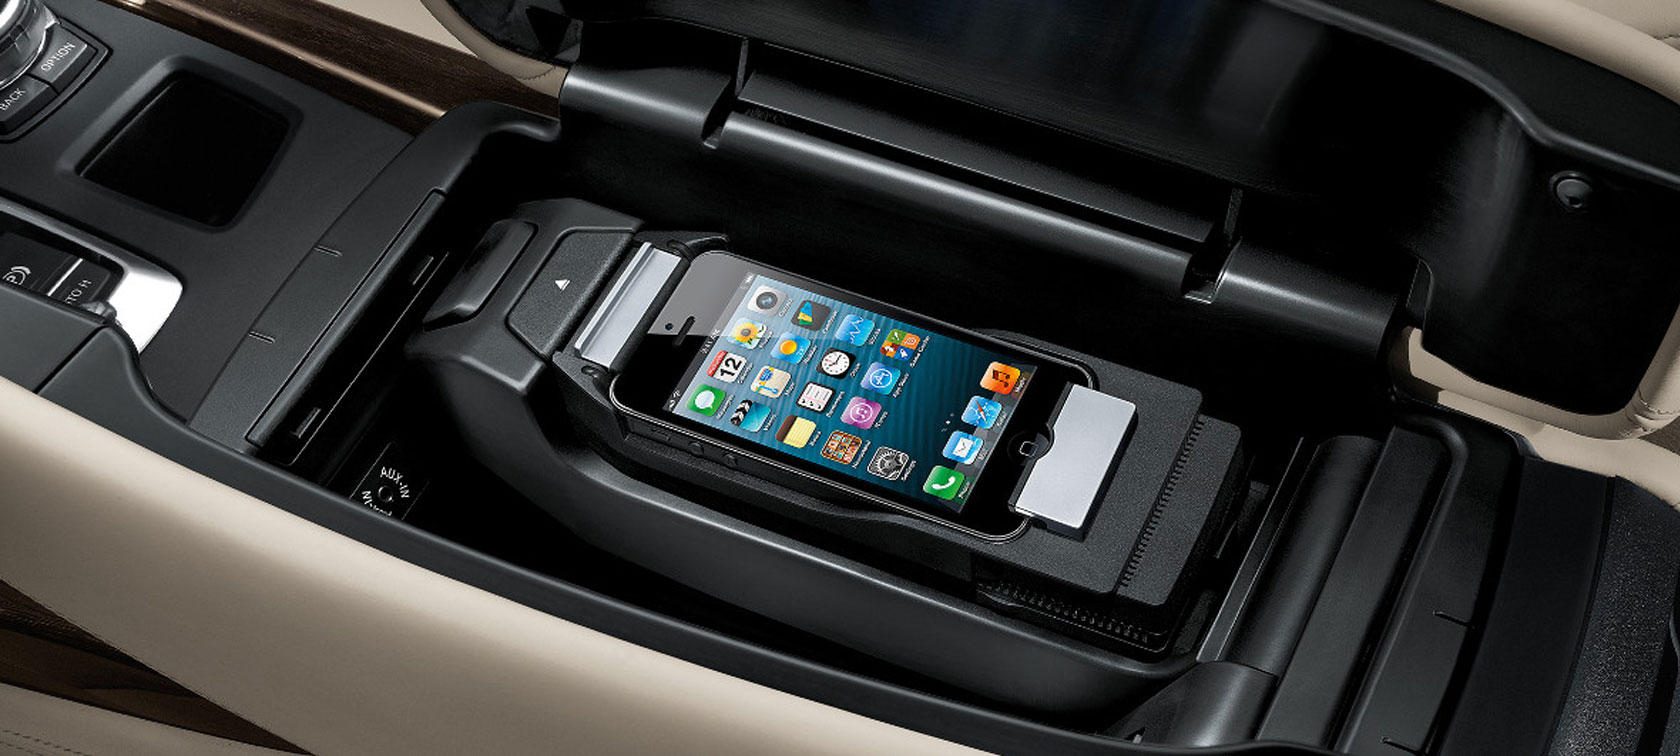 BMW 5 Series: Mobile communication devices in the vehicle